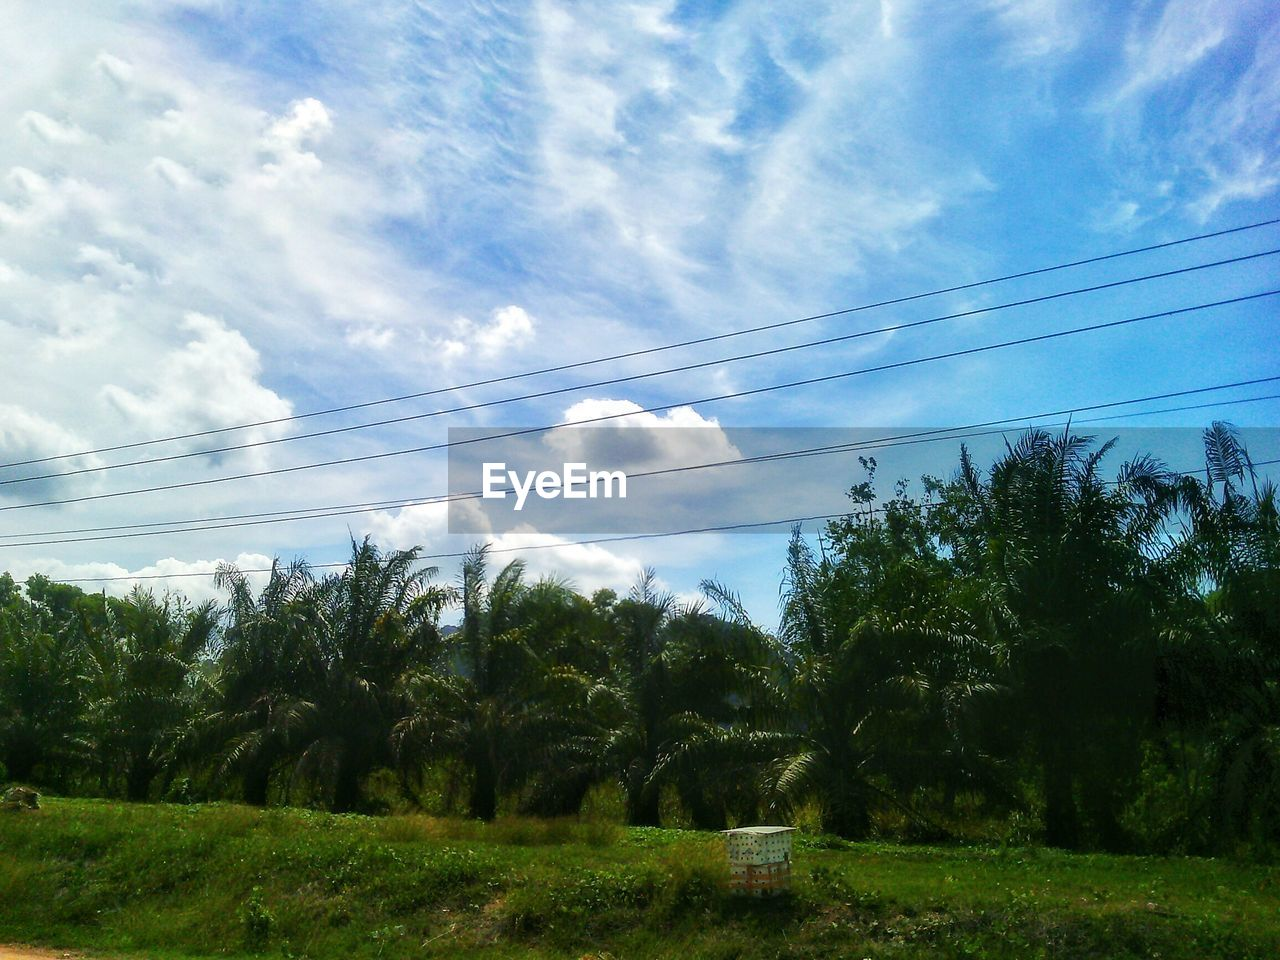 tree, sky, cloud - sky, cable, day, no people, outdoors, power line, nature, low angle view, growth, scenics, tranquility, landscape, beauty in nature, electricity